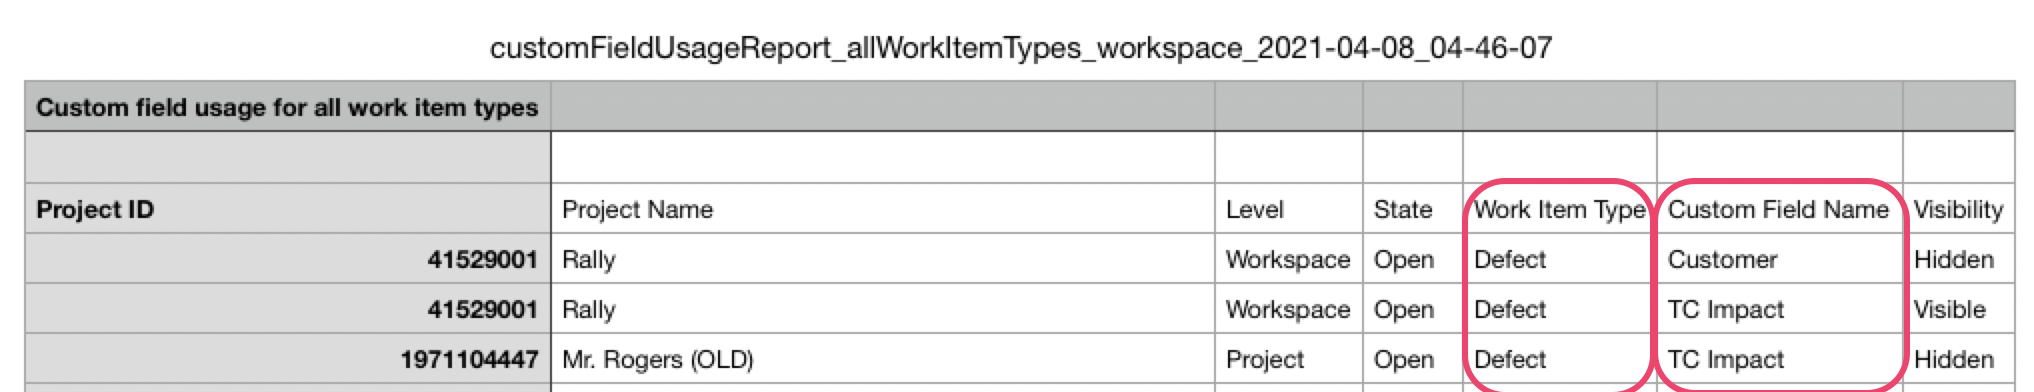 Workspace level report example